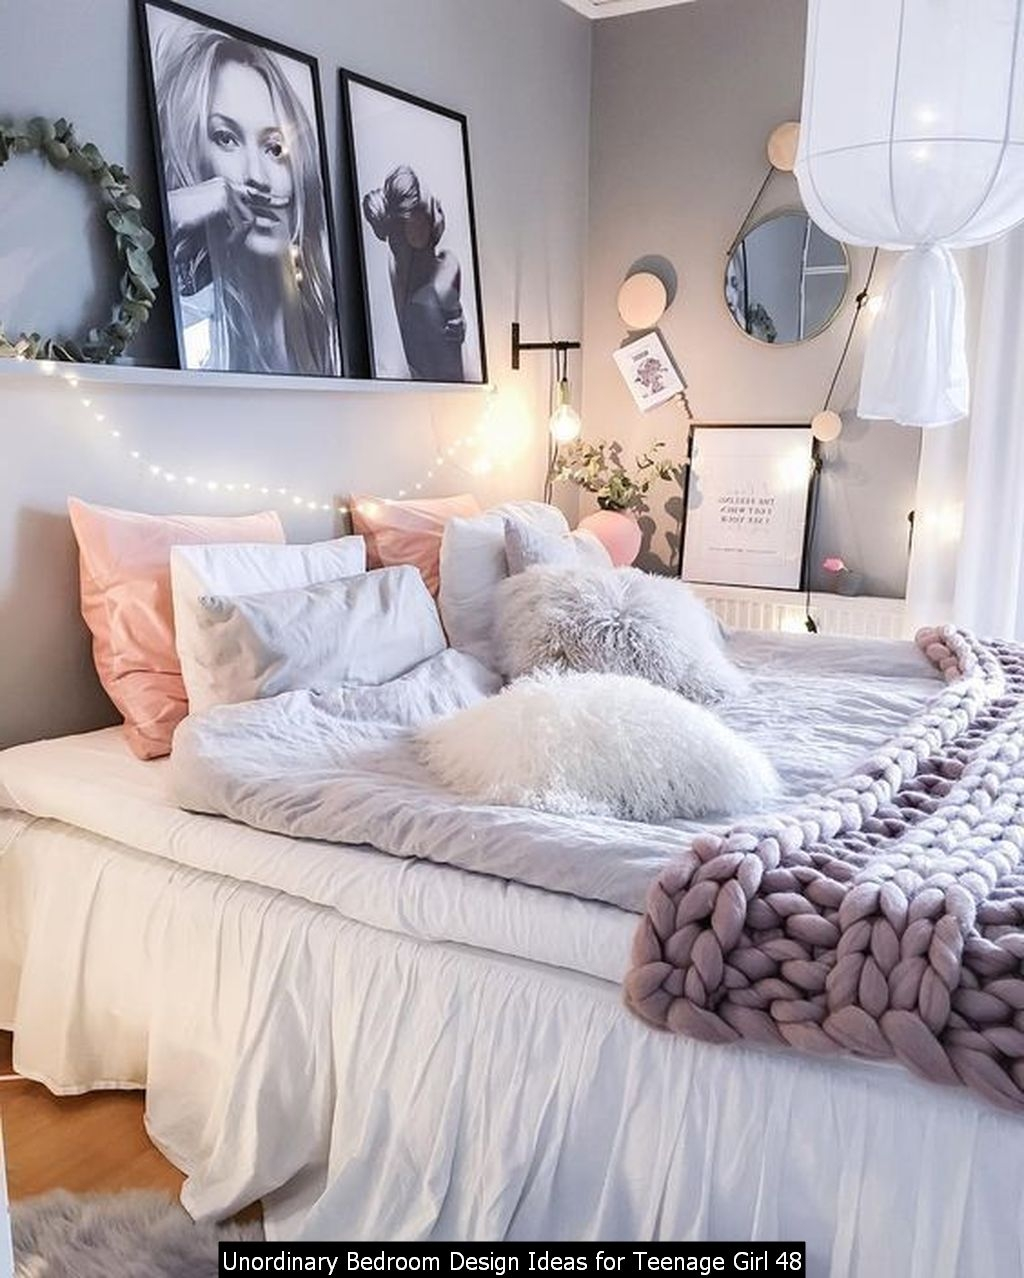 20 Unordinary Bedroom Design Ideas For Teenage Girl Lovahomy